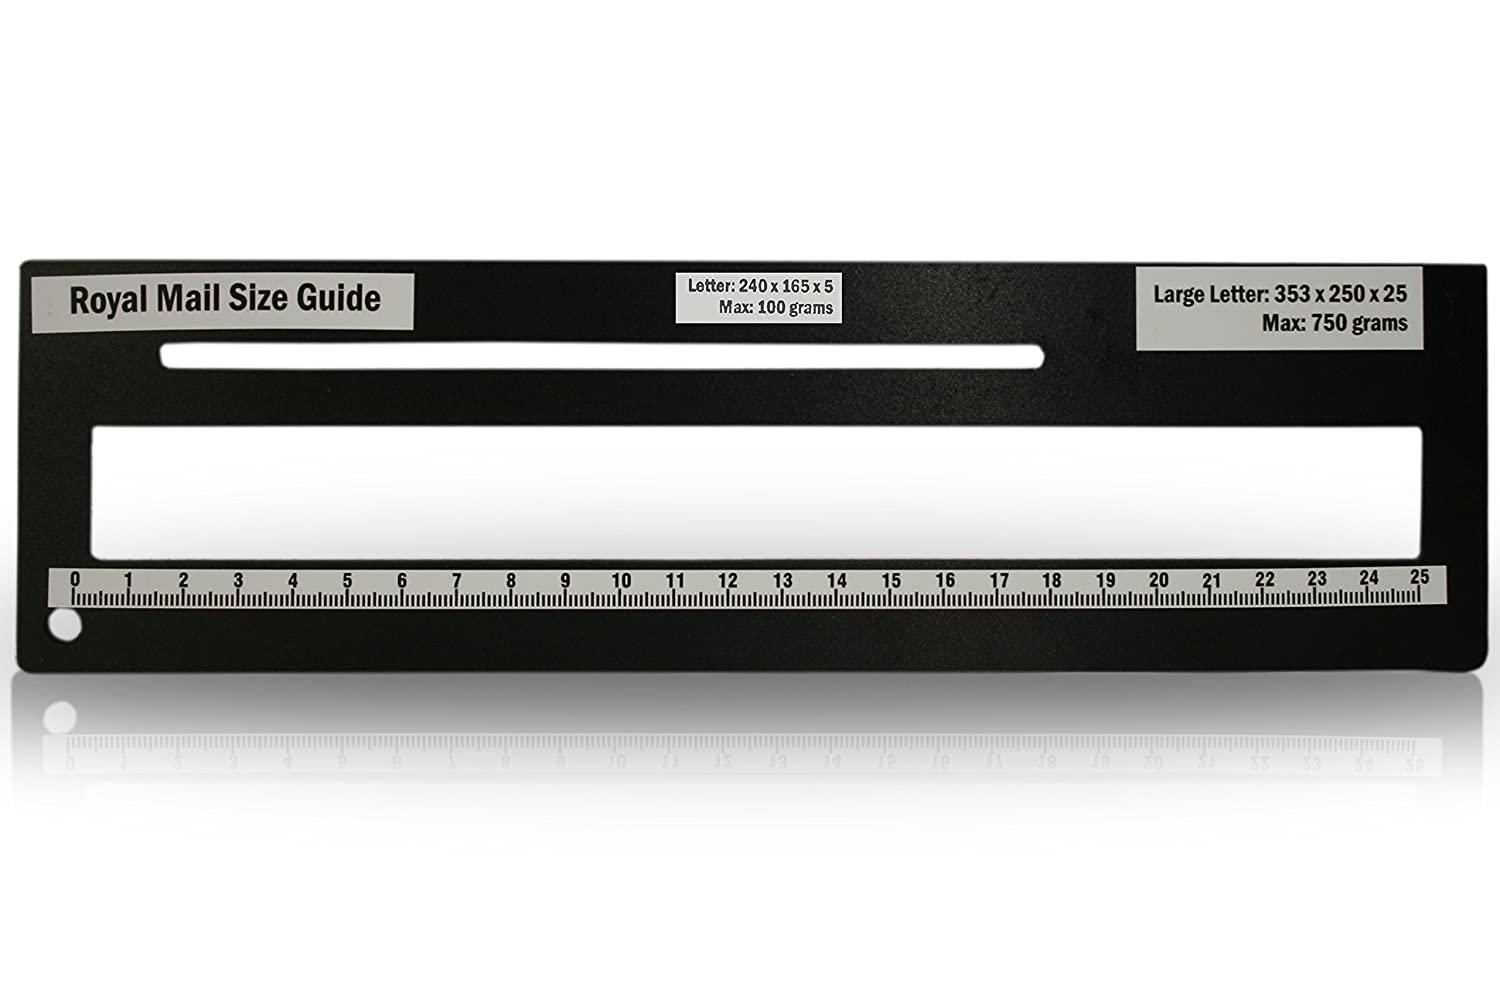 Royal Mail PPI Letter Size Guide Ruler Post Office Postal Price Postage in Black.: Amazon.co.uk: Office Products